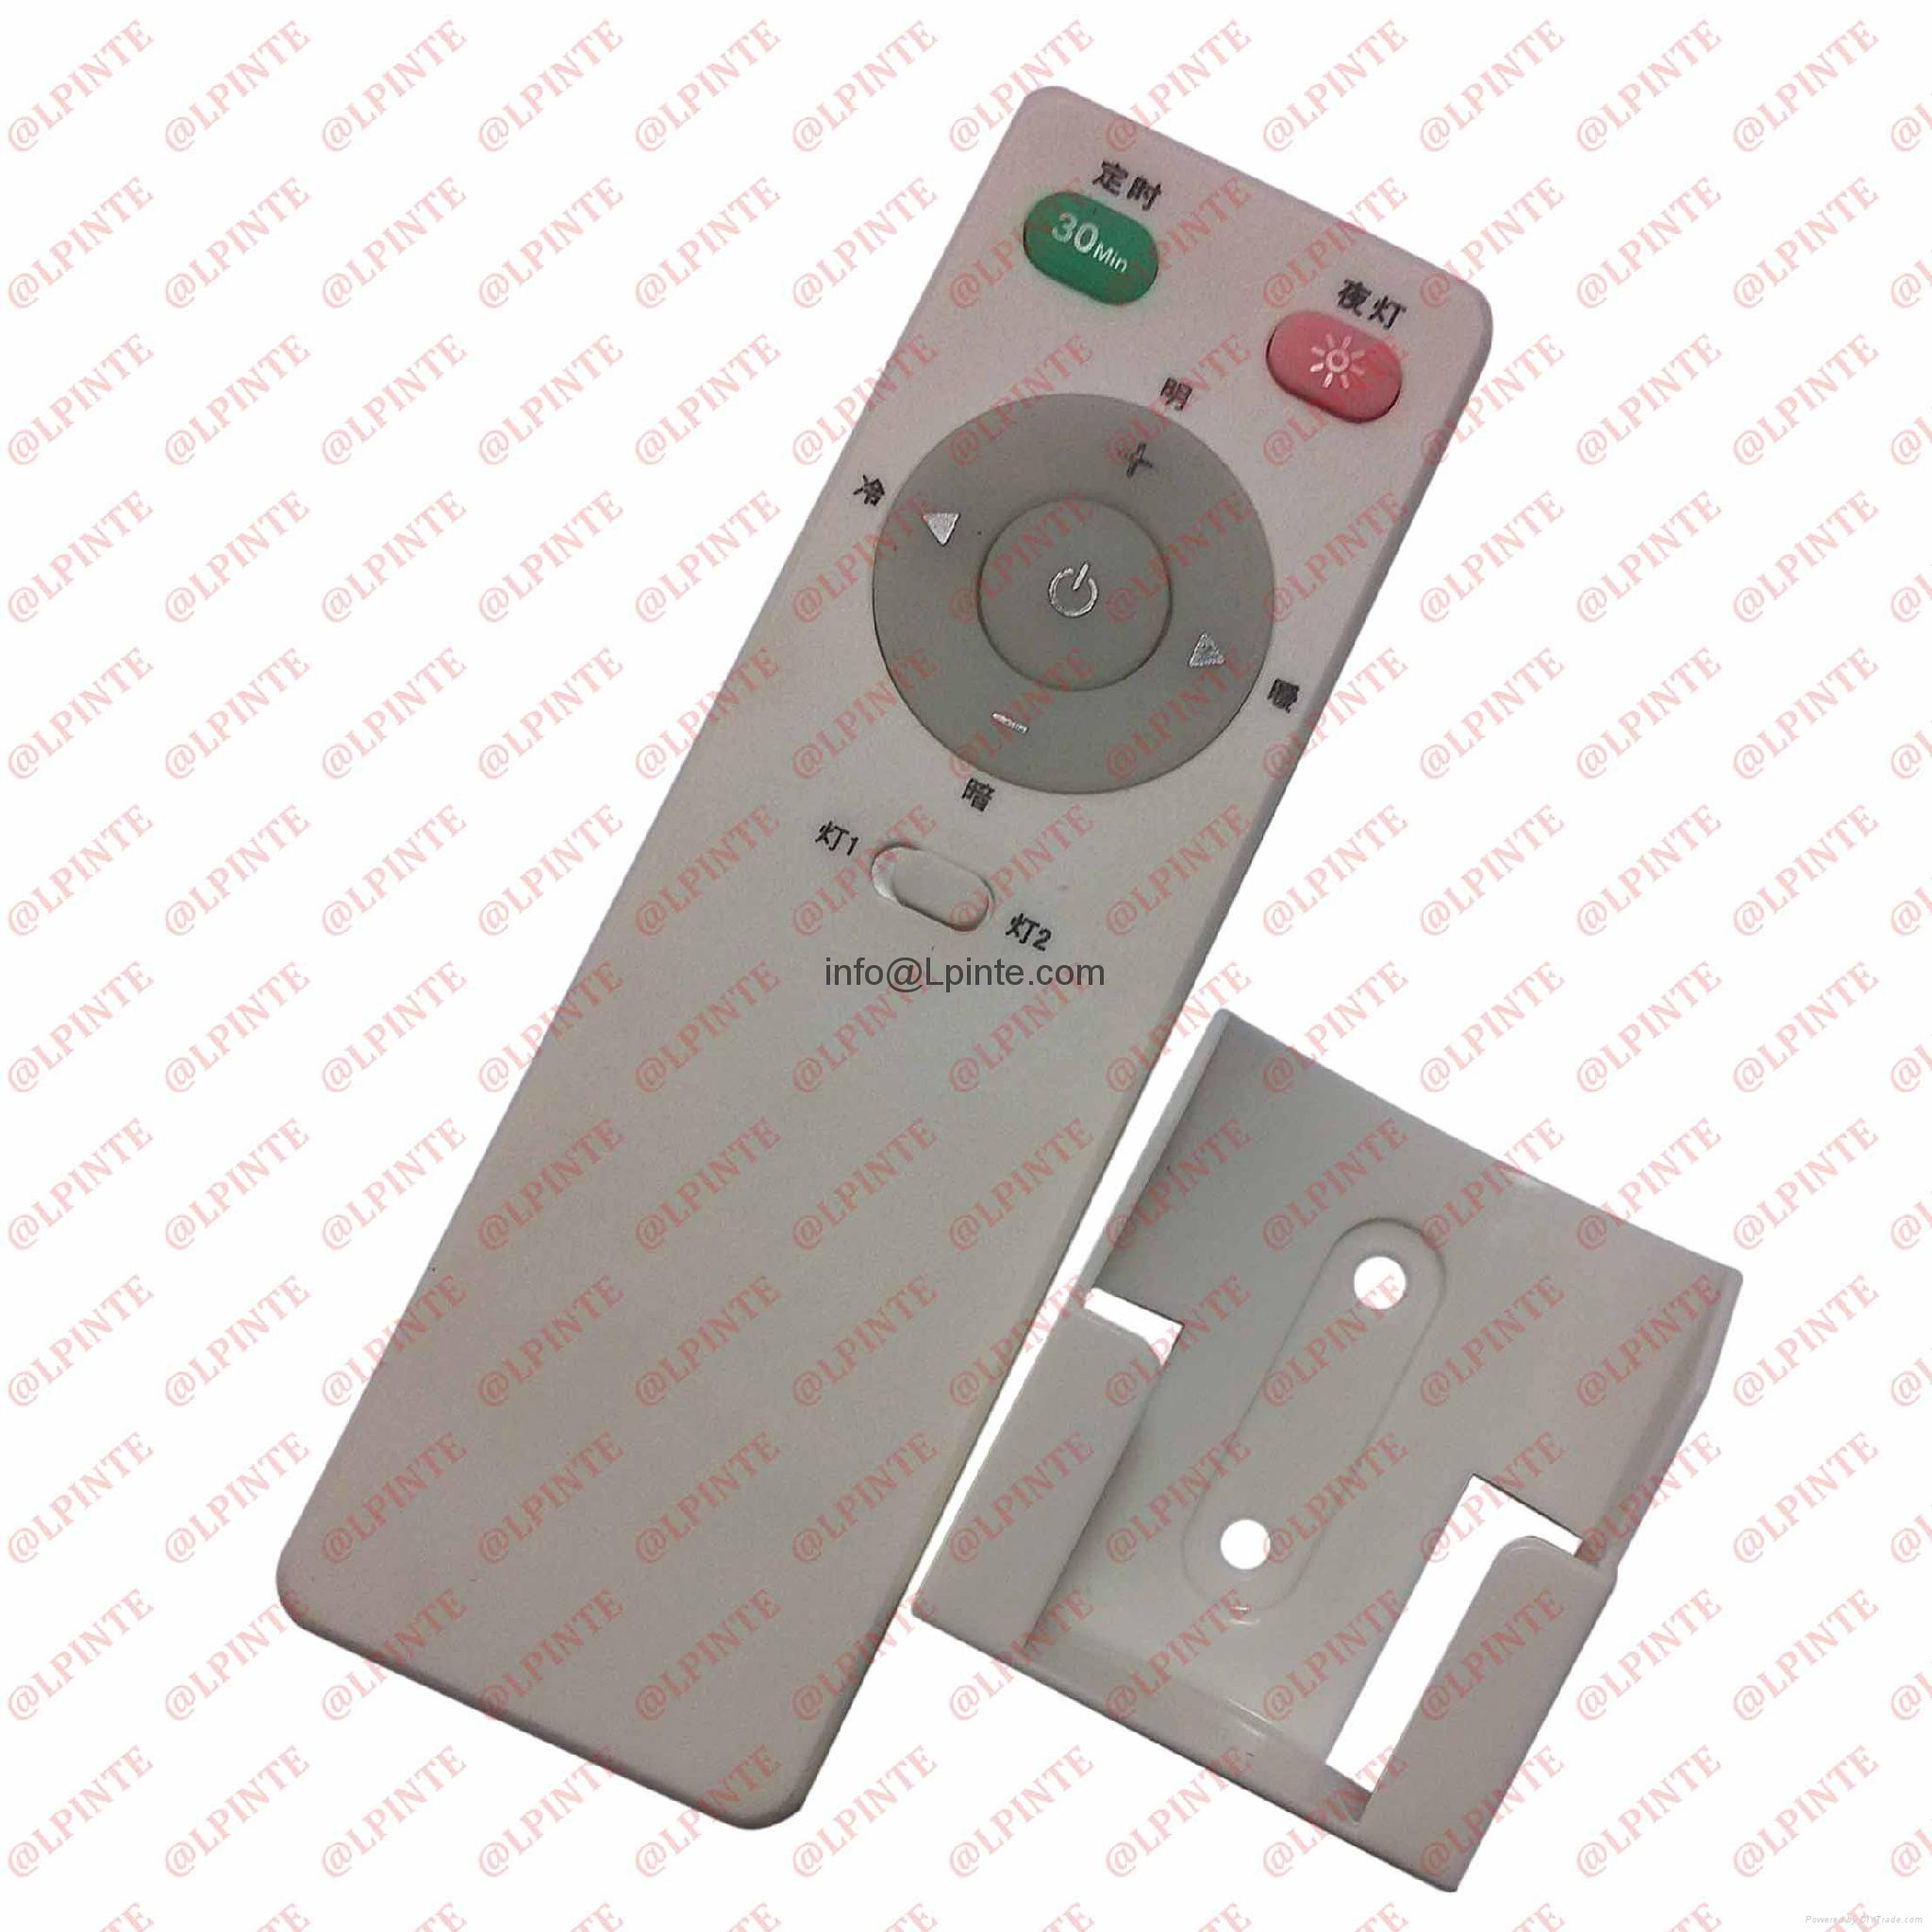 audio media tv remote control 7 keys rubber botton with holder LPI-R07B 1